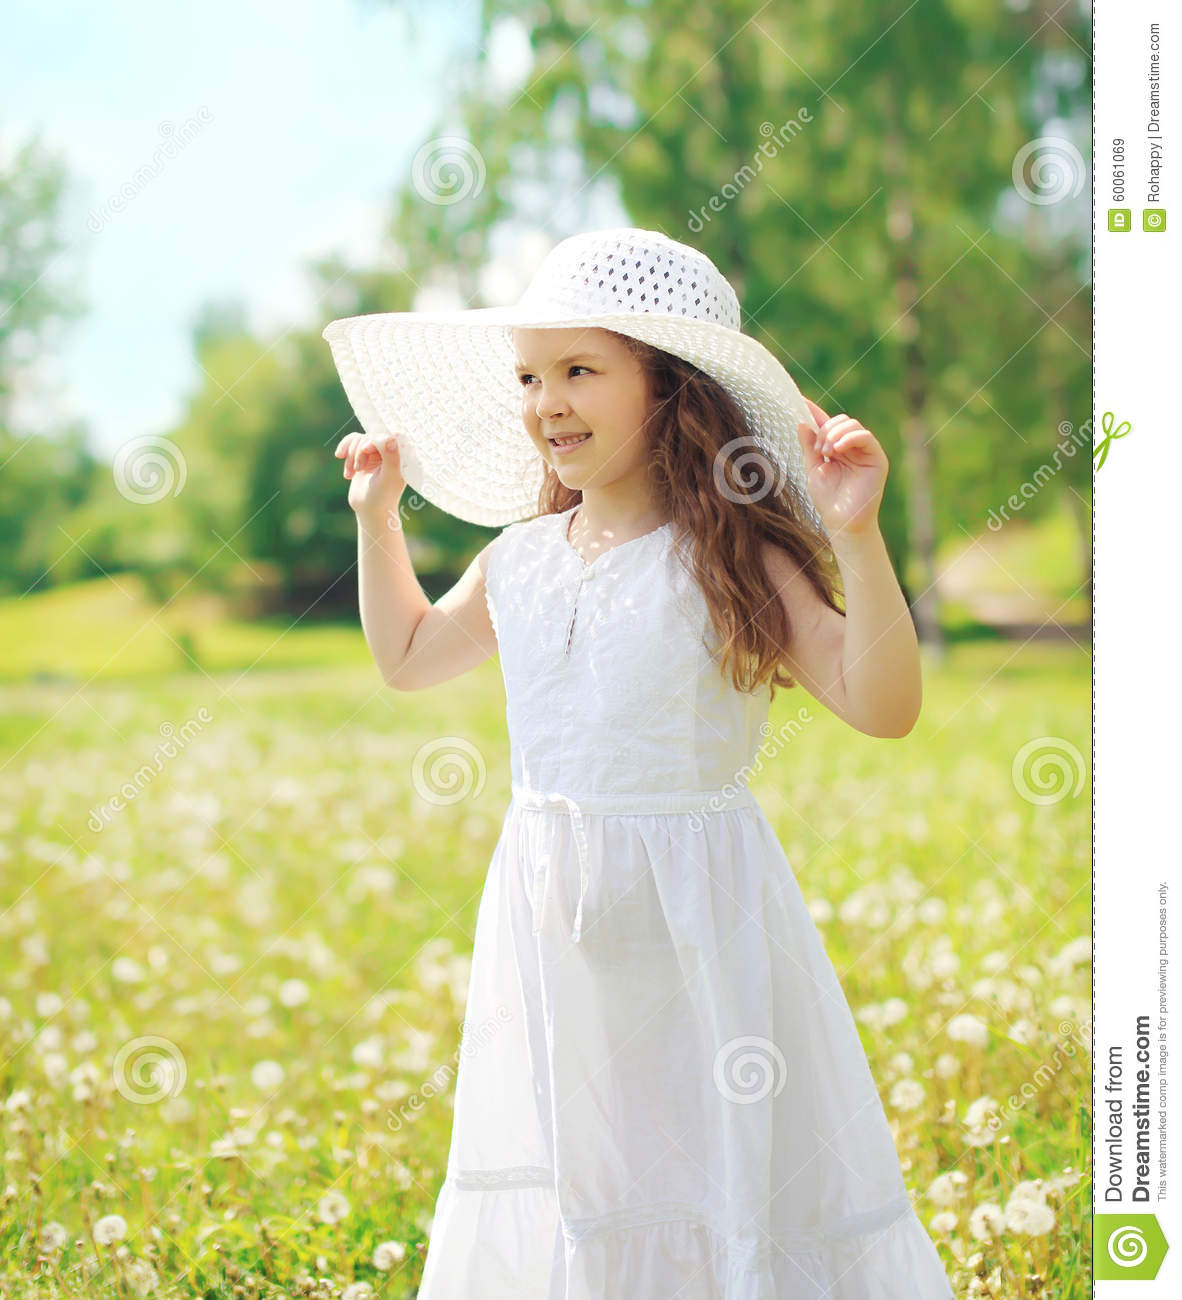 Little Girl Child Wearing A Straw Hat And White Dress In Summer ... f3c91ece1d6